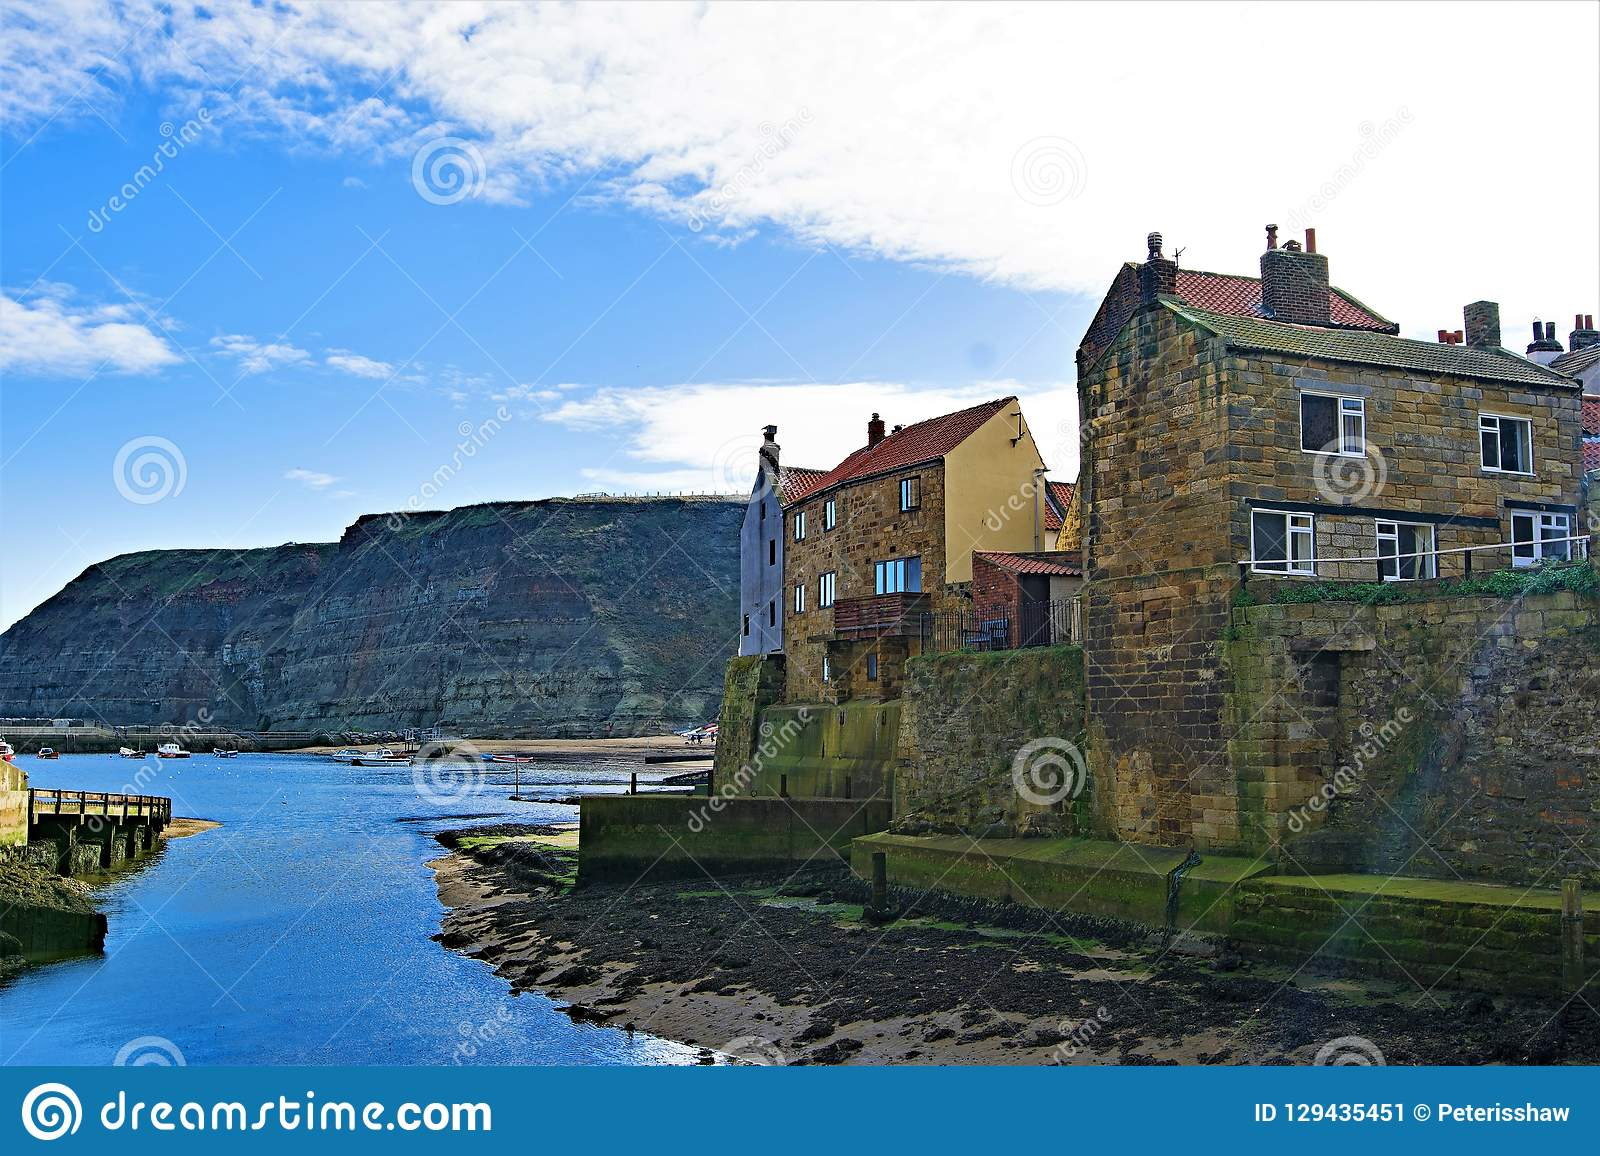 Inland view of Staithes harbour and Penny Nab, near Scarborough, in North Yorkshire.